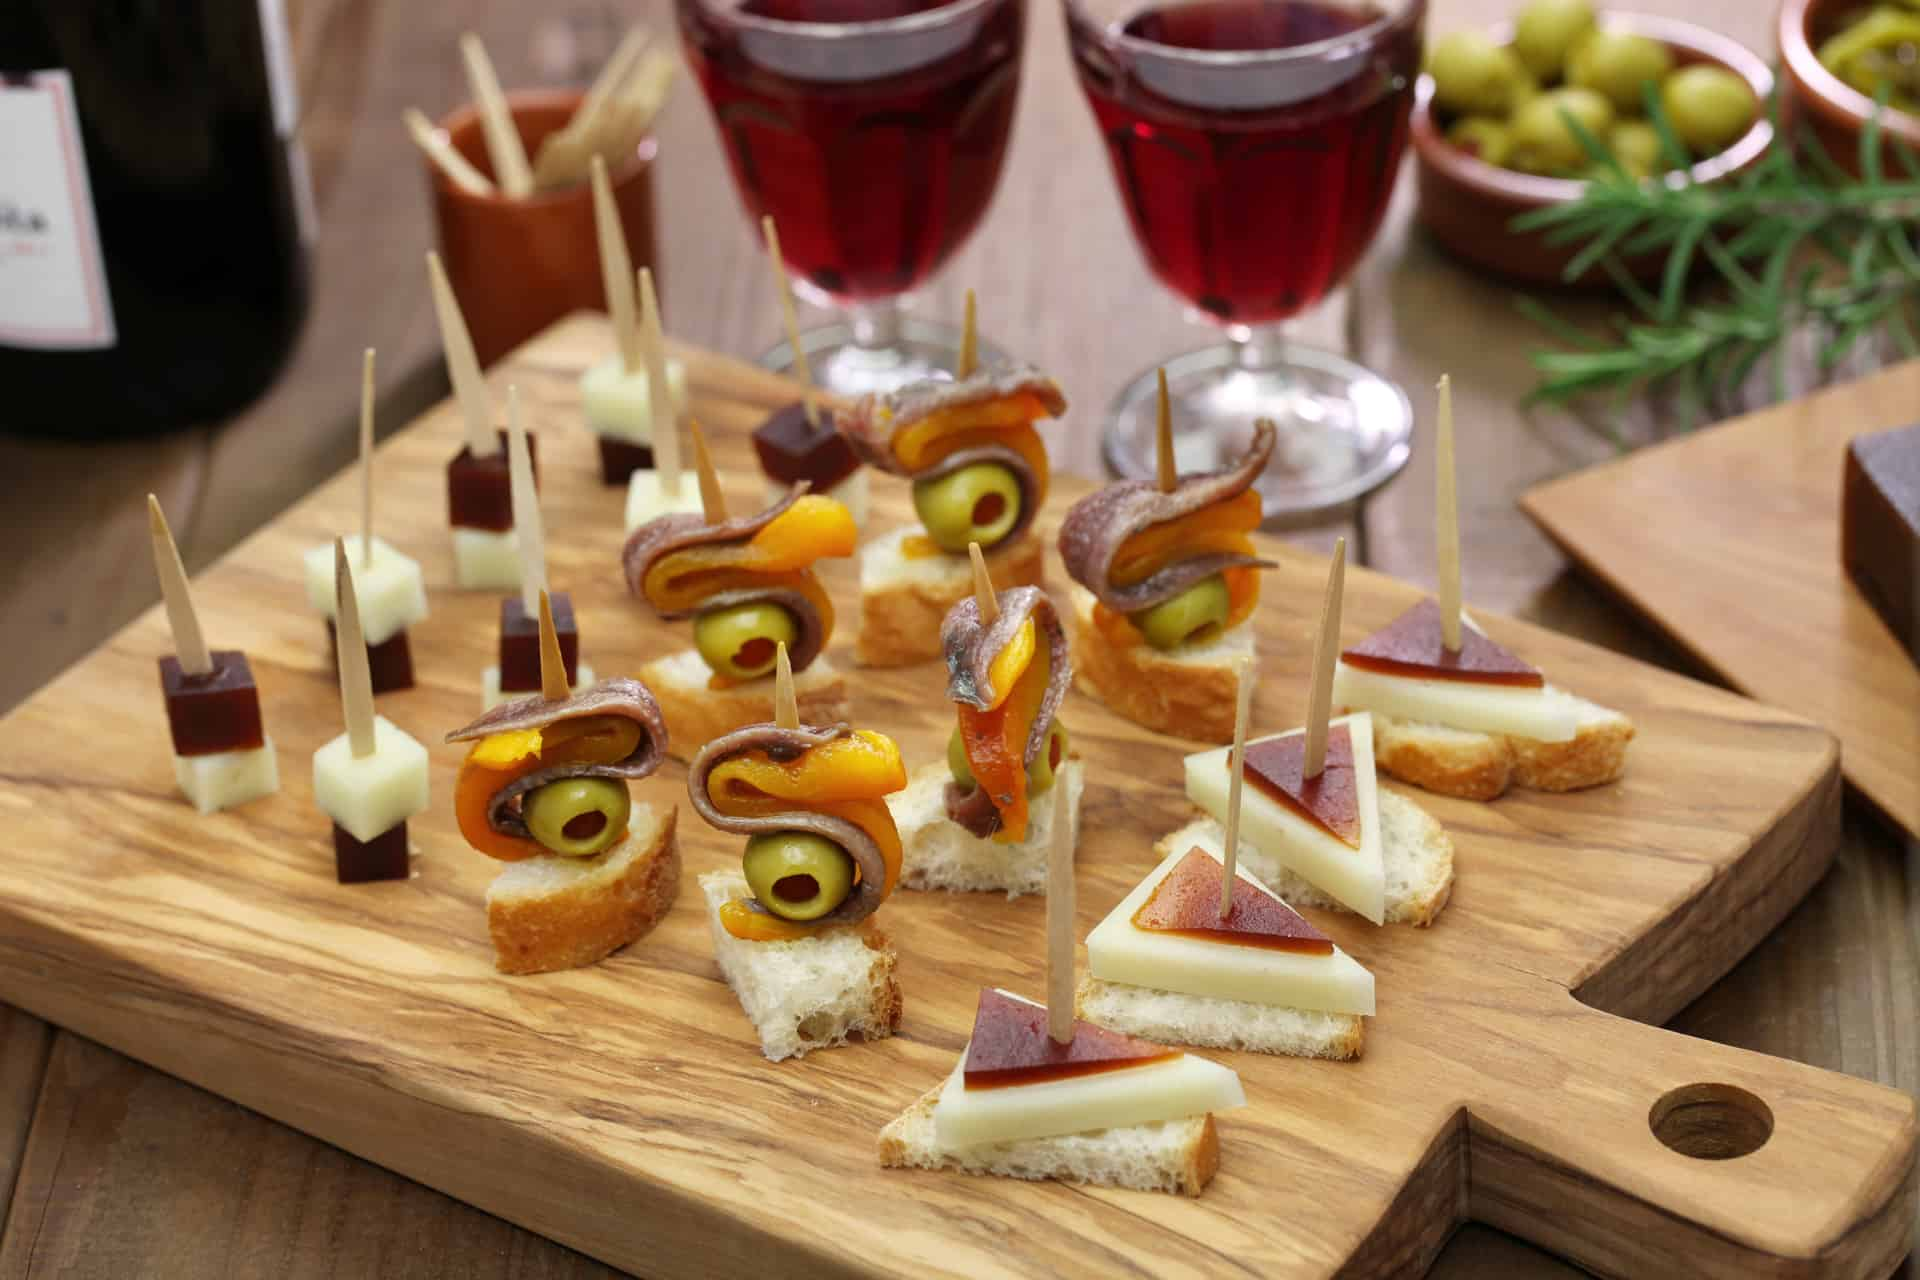 Introducing the Food and Wine Blog of Don Quijote